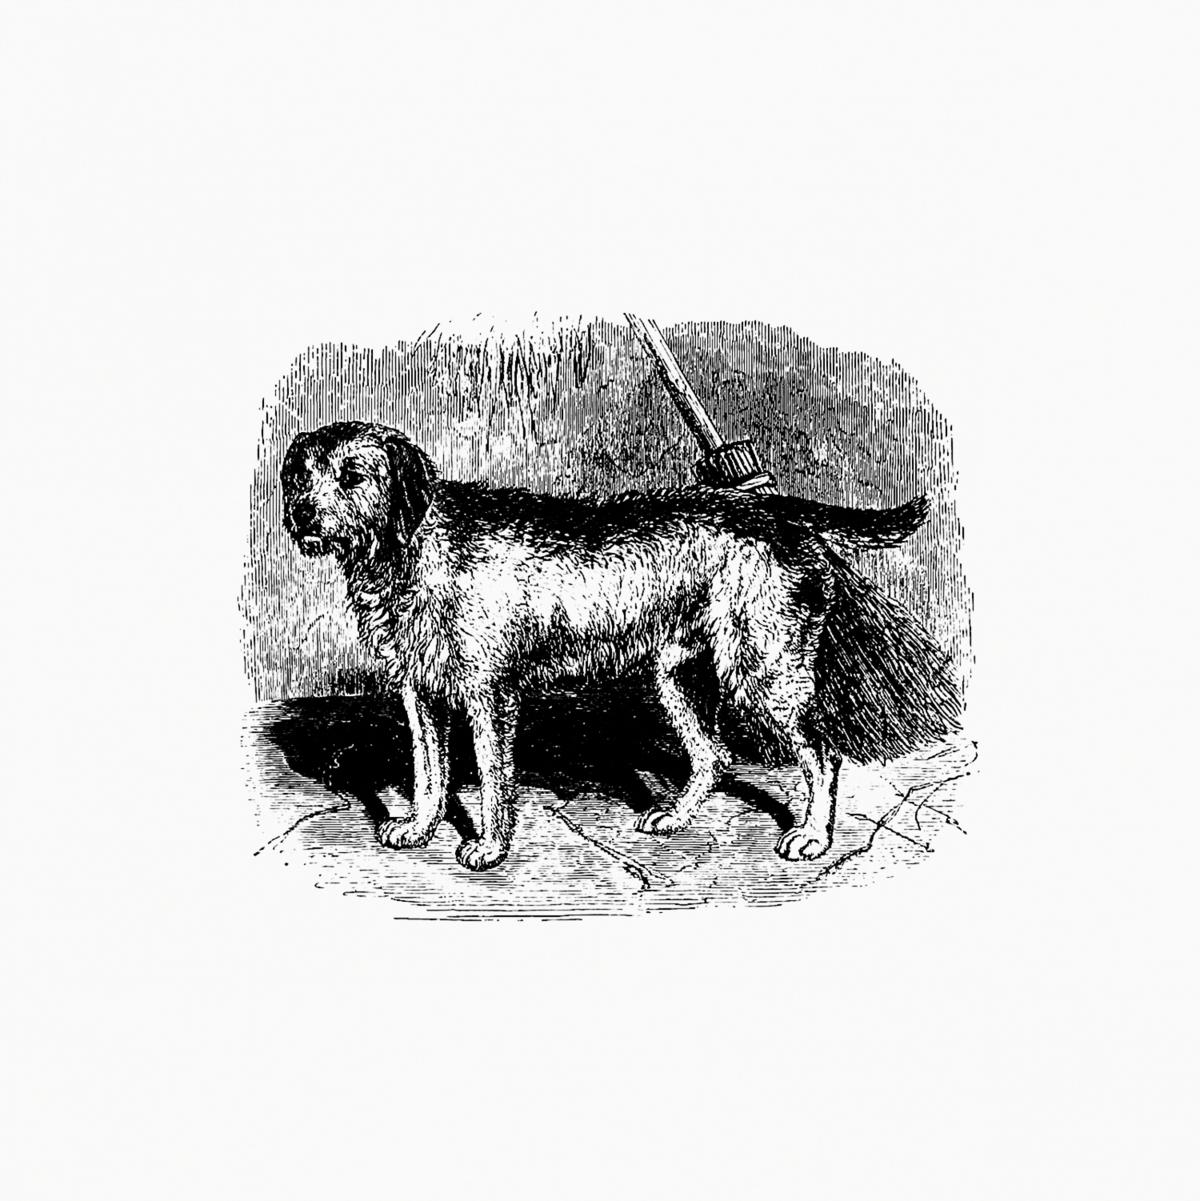 Retriever for loch-shooting published by William Blackwood & Sons (1840). Original from the British Library.